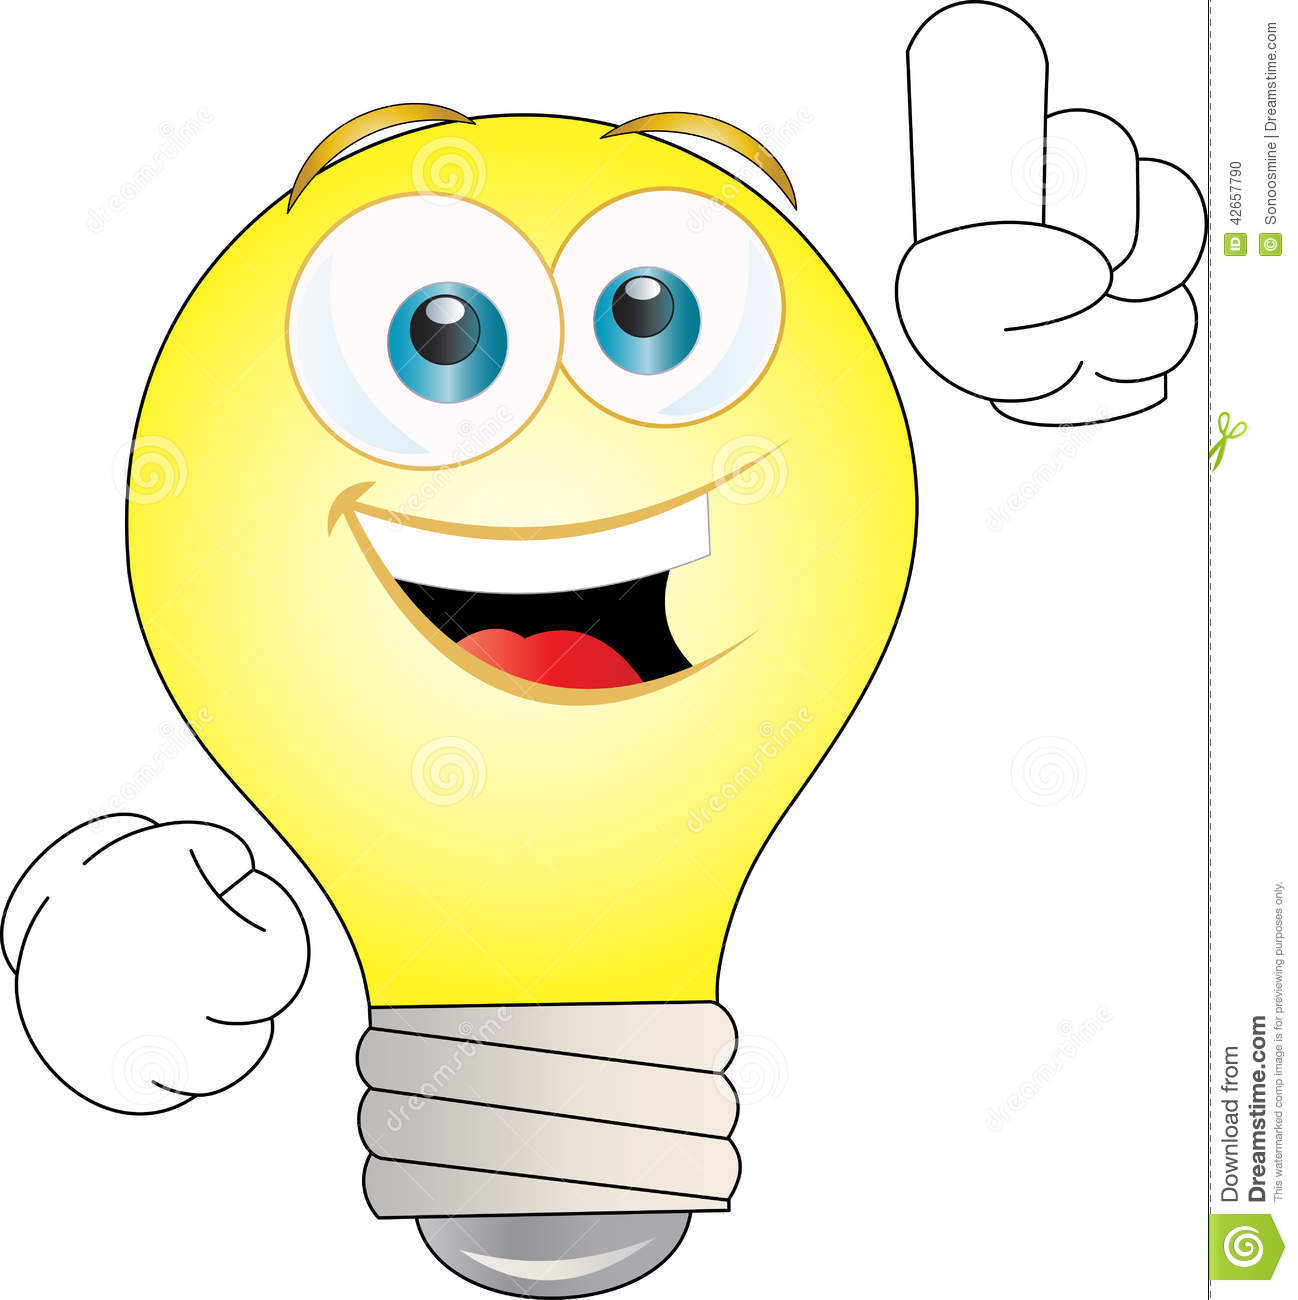 Idees And Solutions: Idea Bulb Stock Vector. Illustration Of Light, Bulb